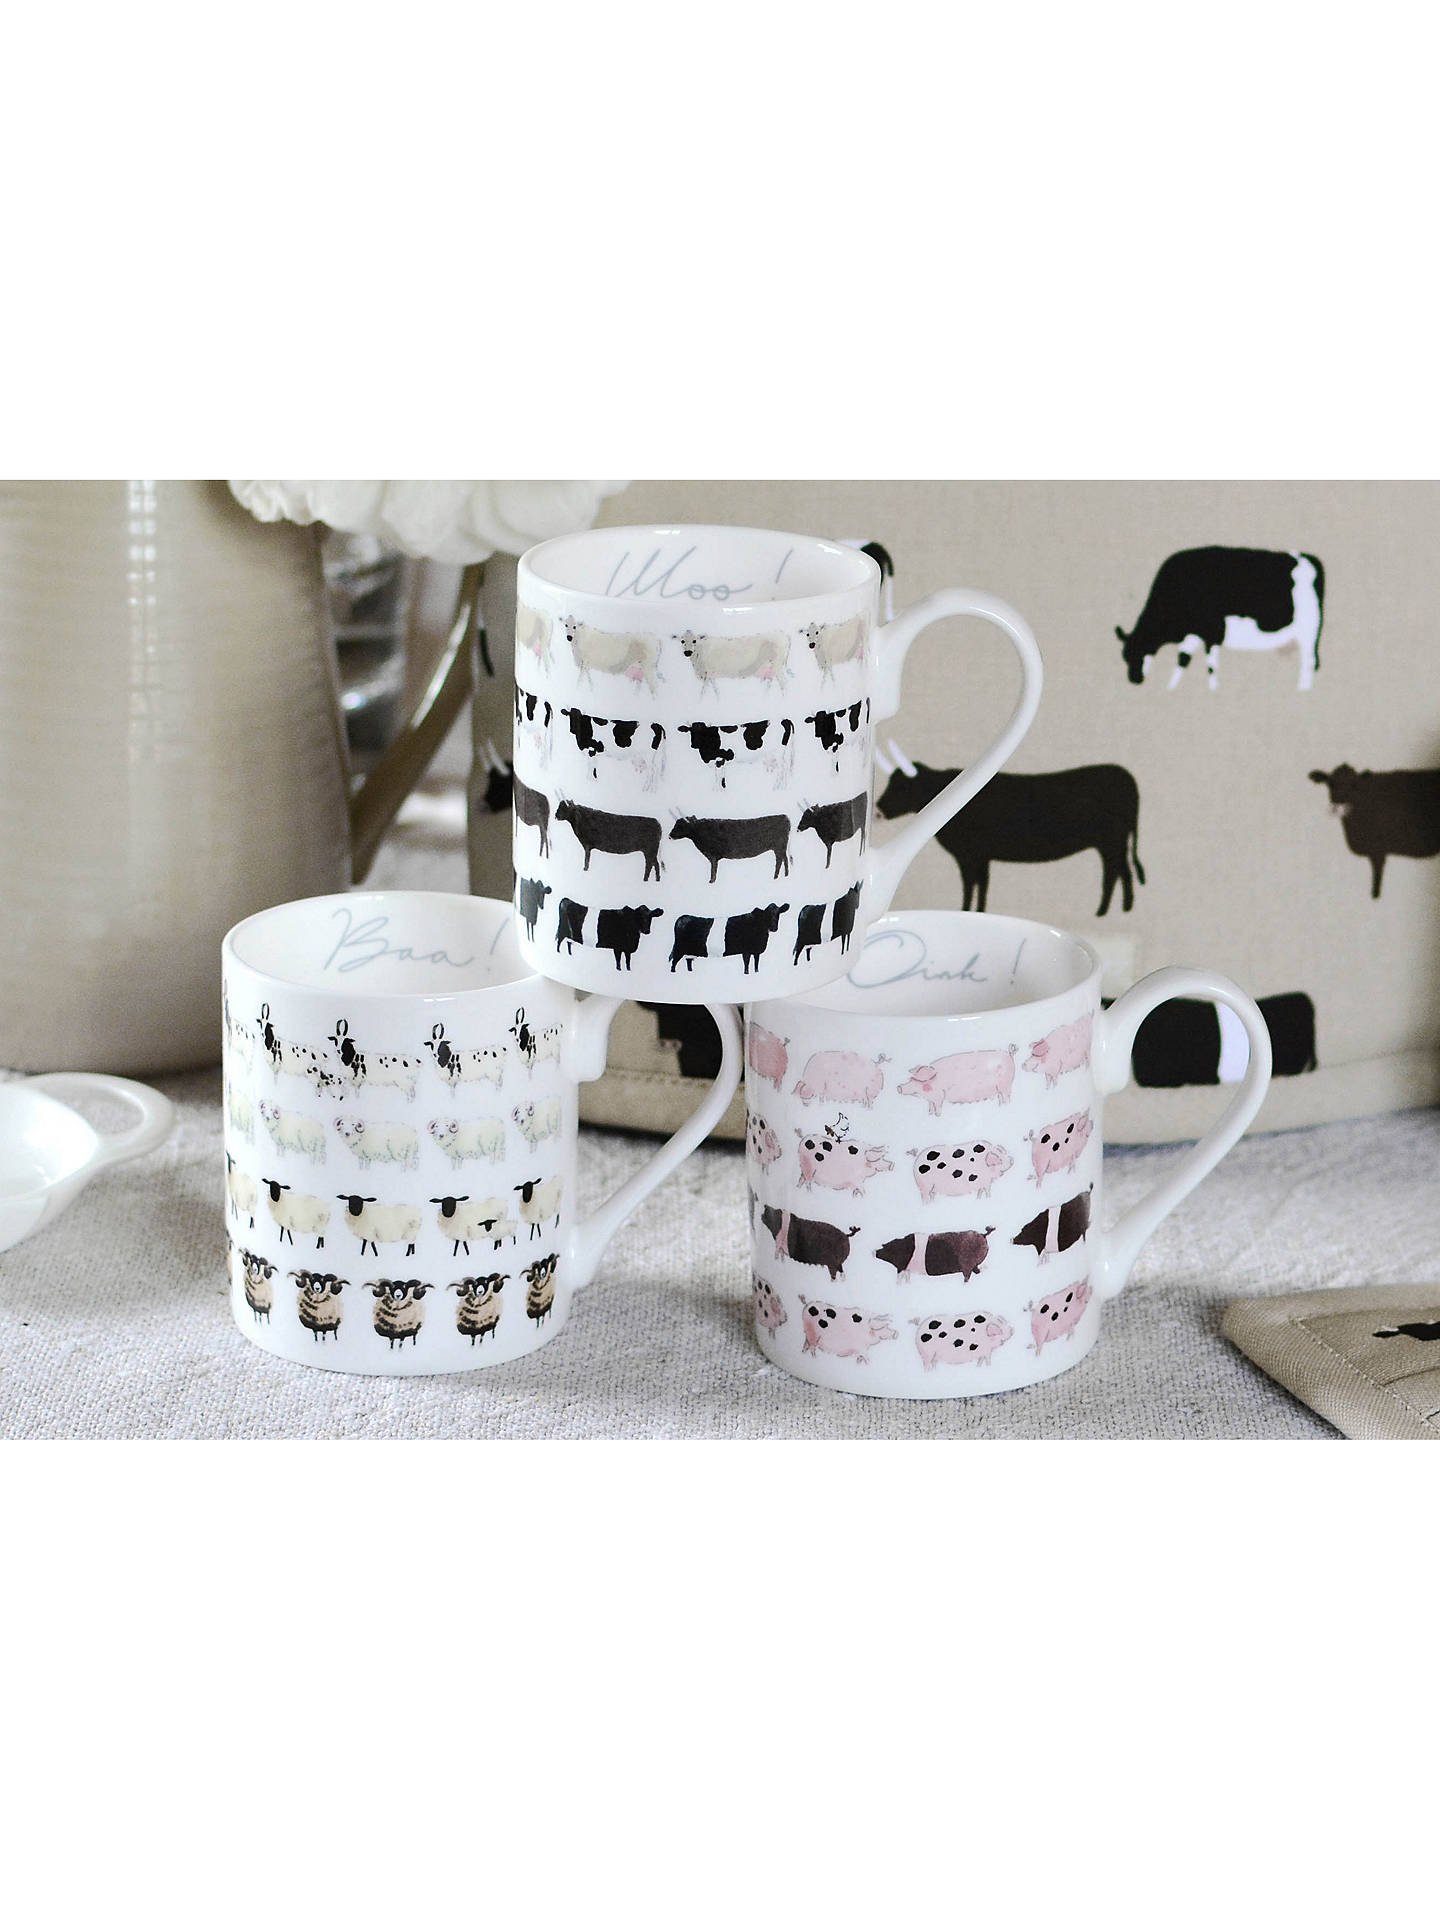 BuySophie Allport Pig Mug, 275ml Online at johnlewis.com